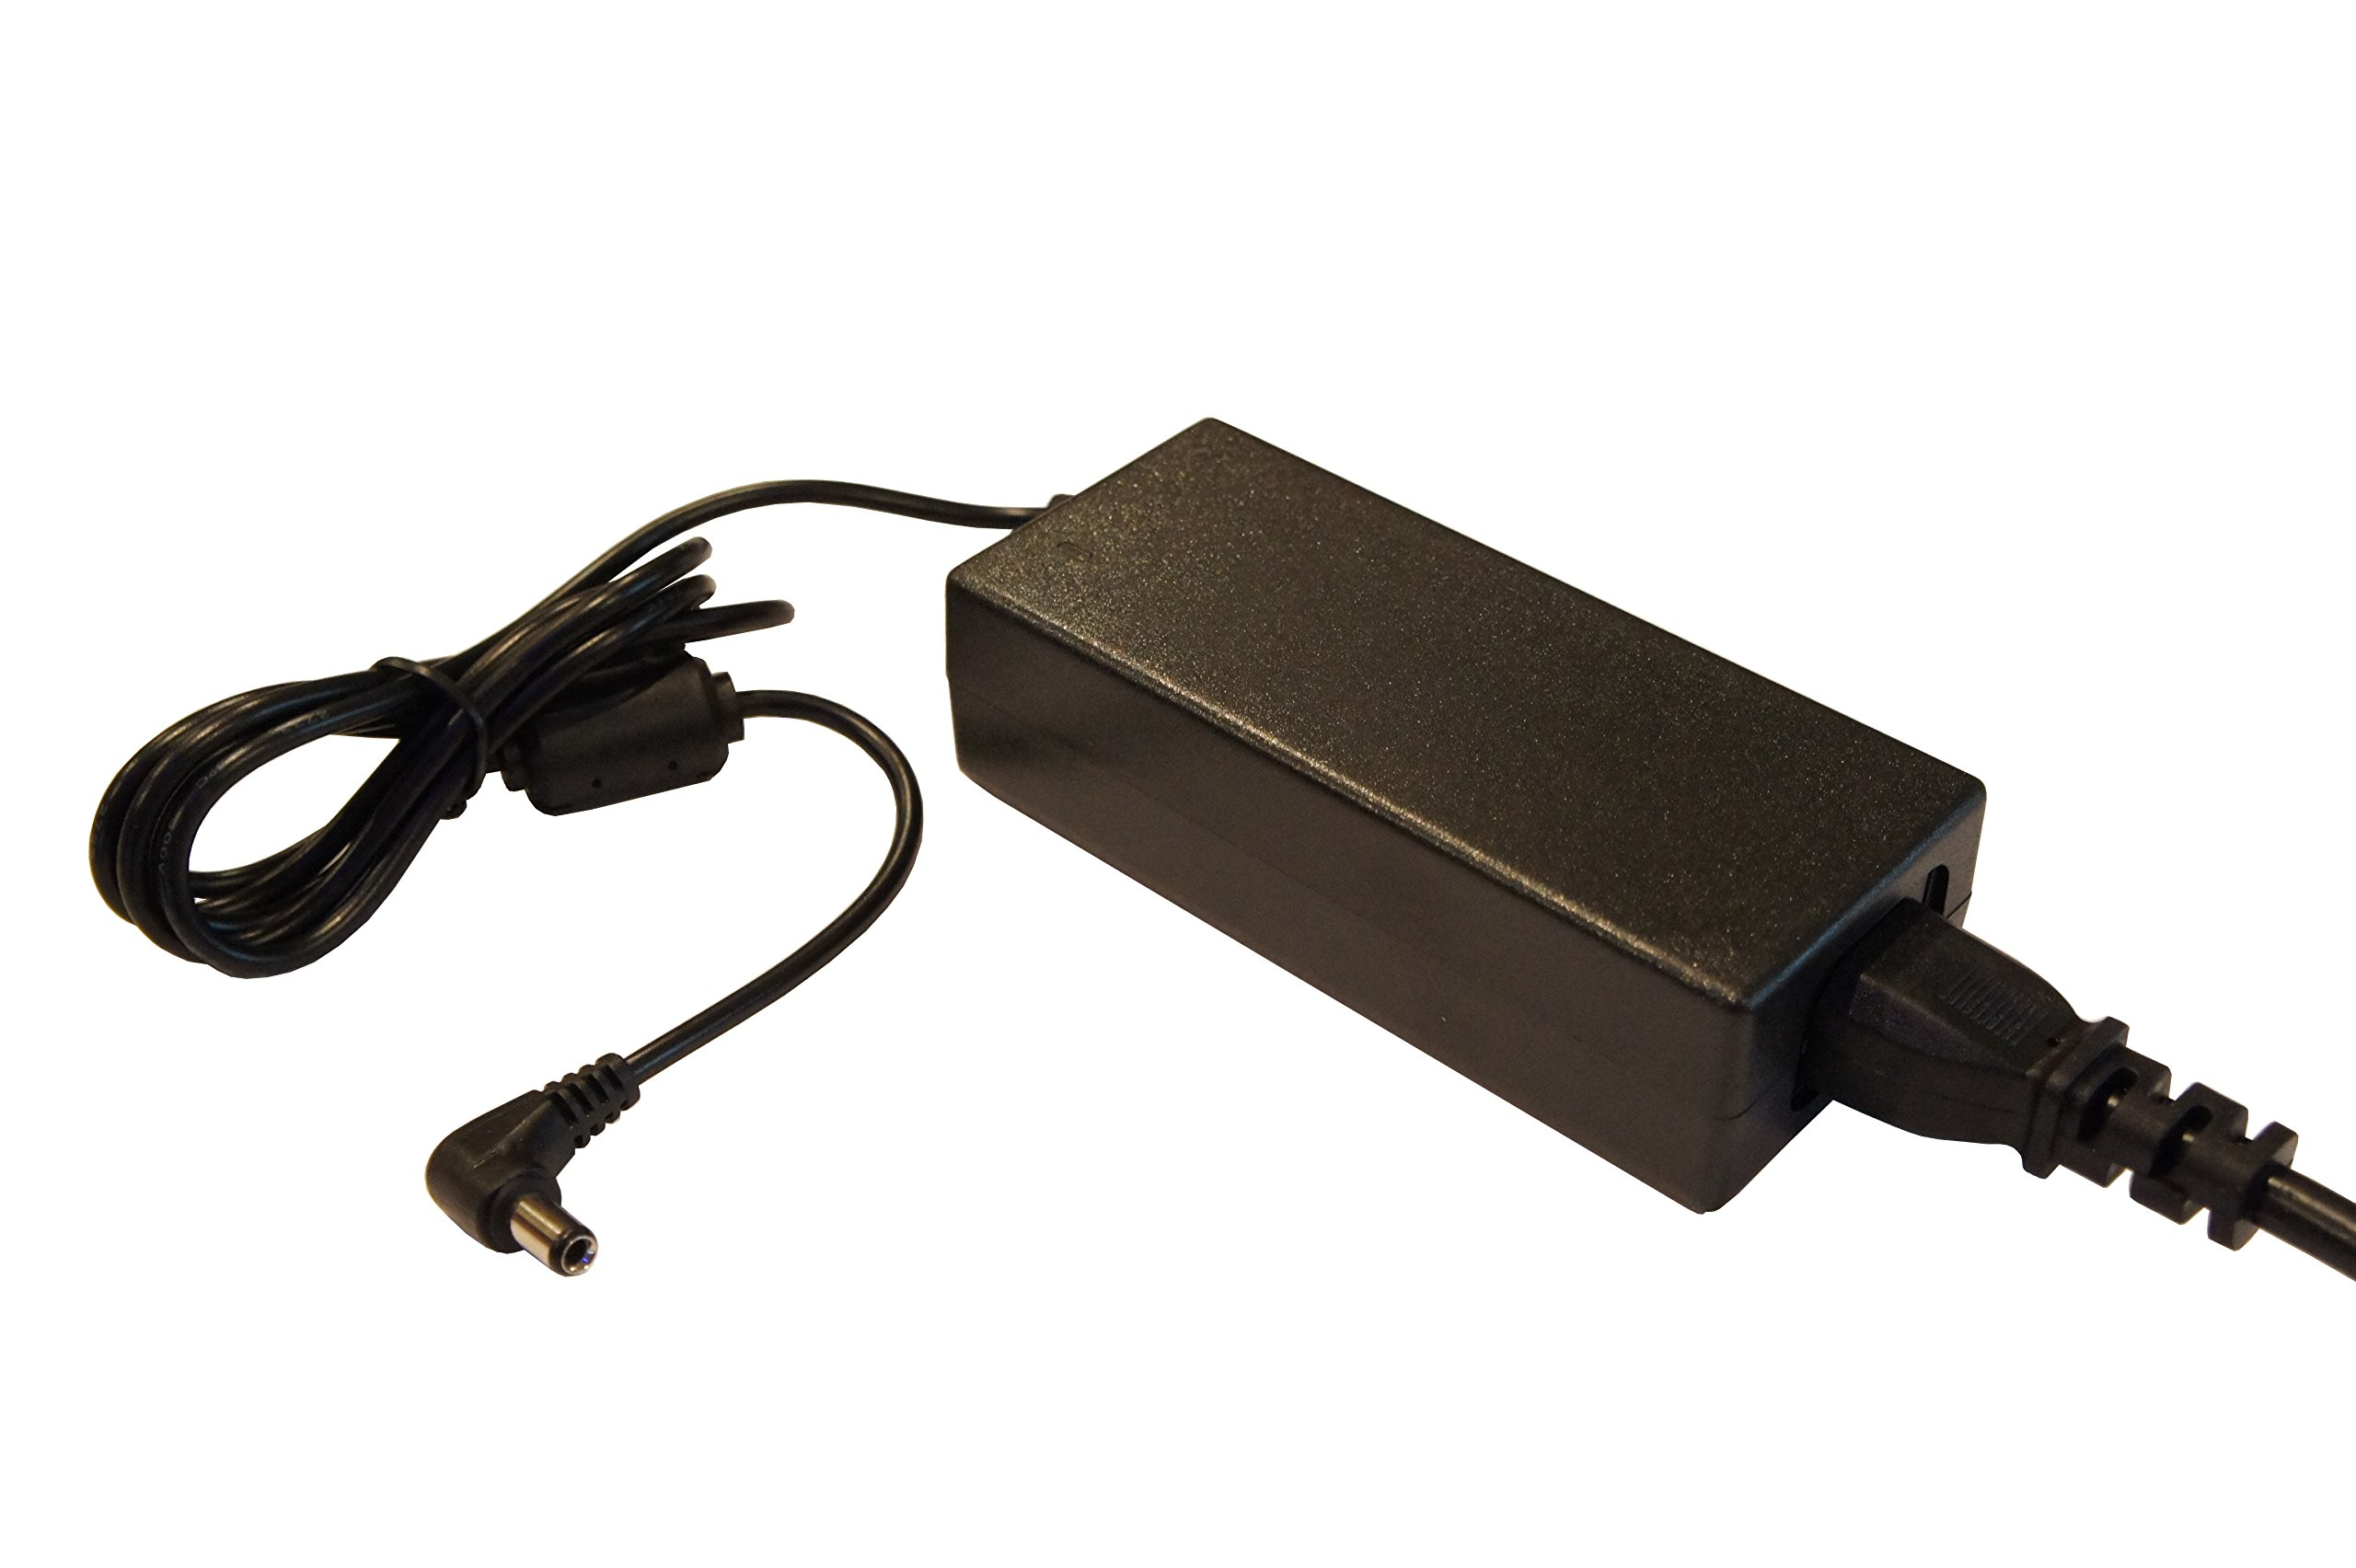 Power Supply AC DC Adapter for Blackstar Fly 3 Guitar, Fly 3 Bass Amplifier & Fly3 Guitar Bluetooth by Keen Eye